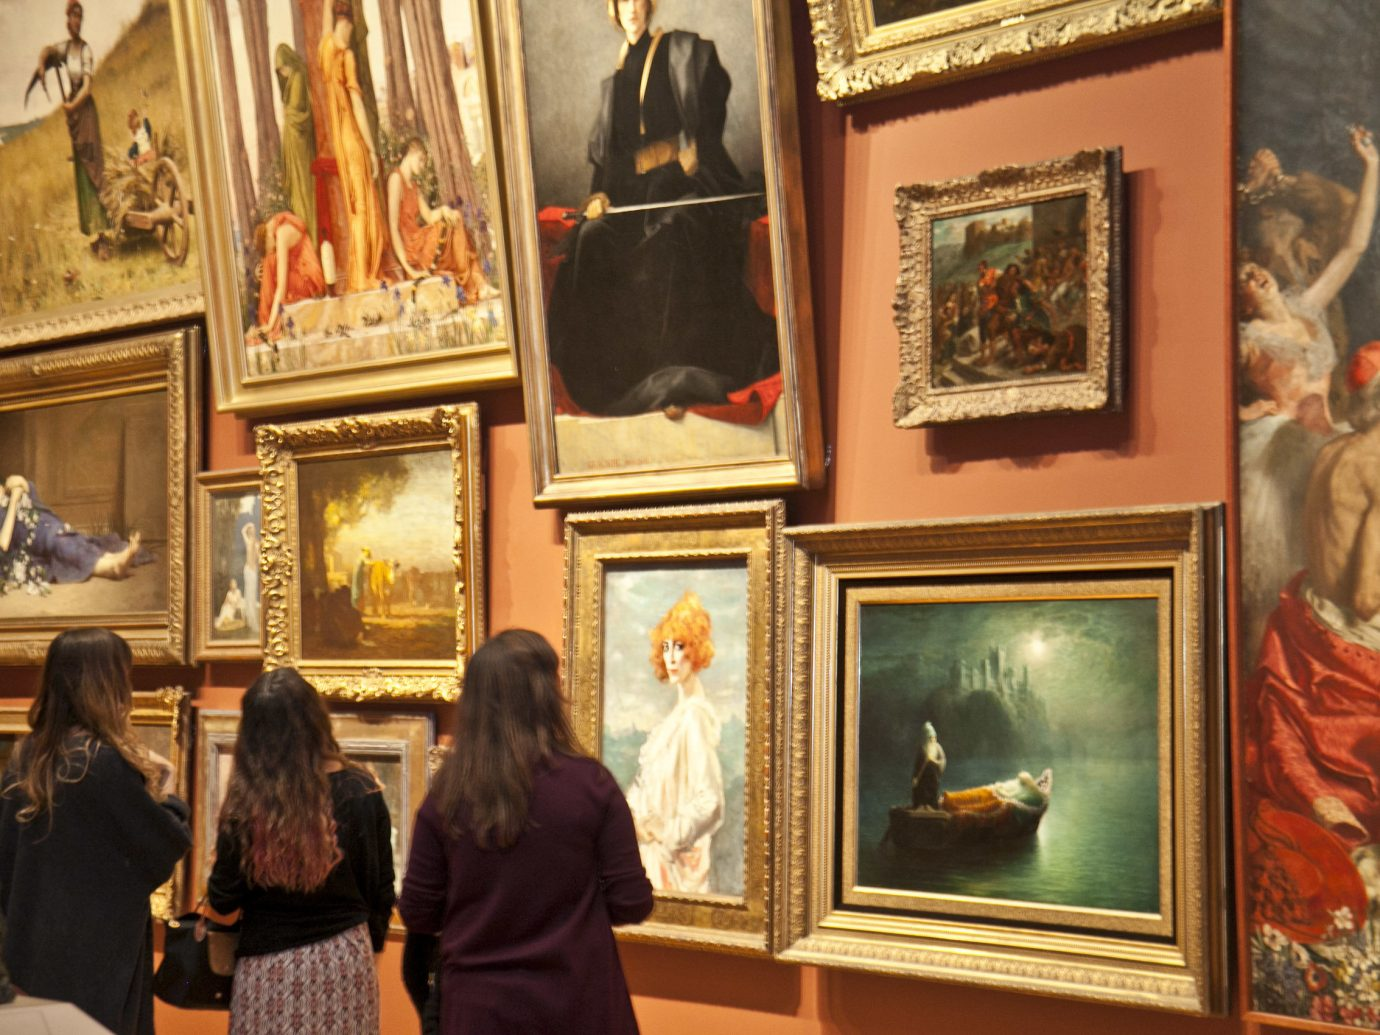 Trip Ideas person gallery scene room tourist attraction art museum art gallery posing ancient history art exhibition painting Family